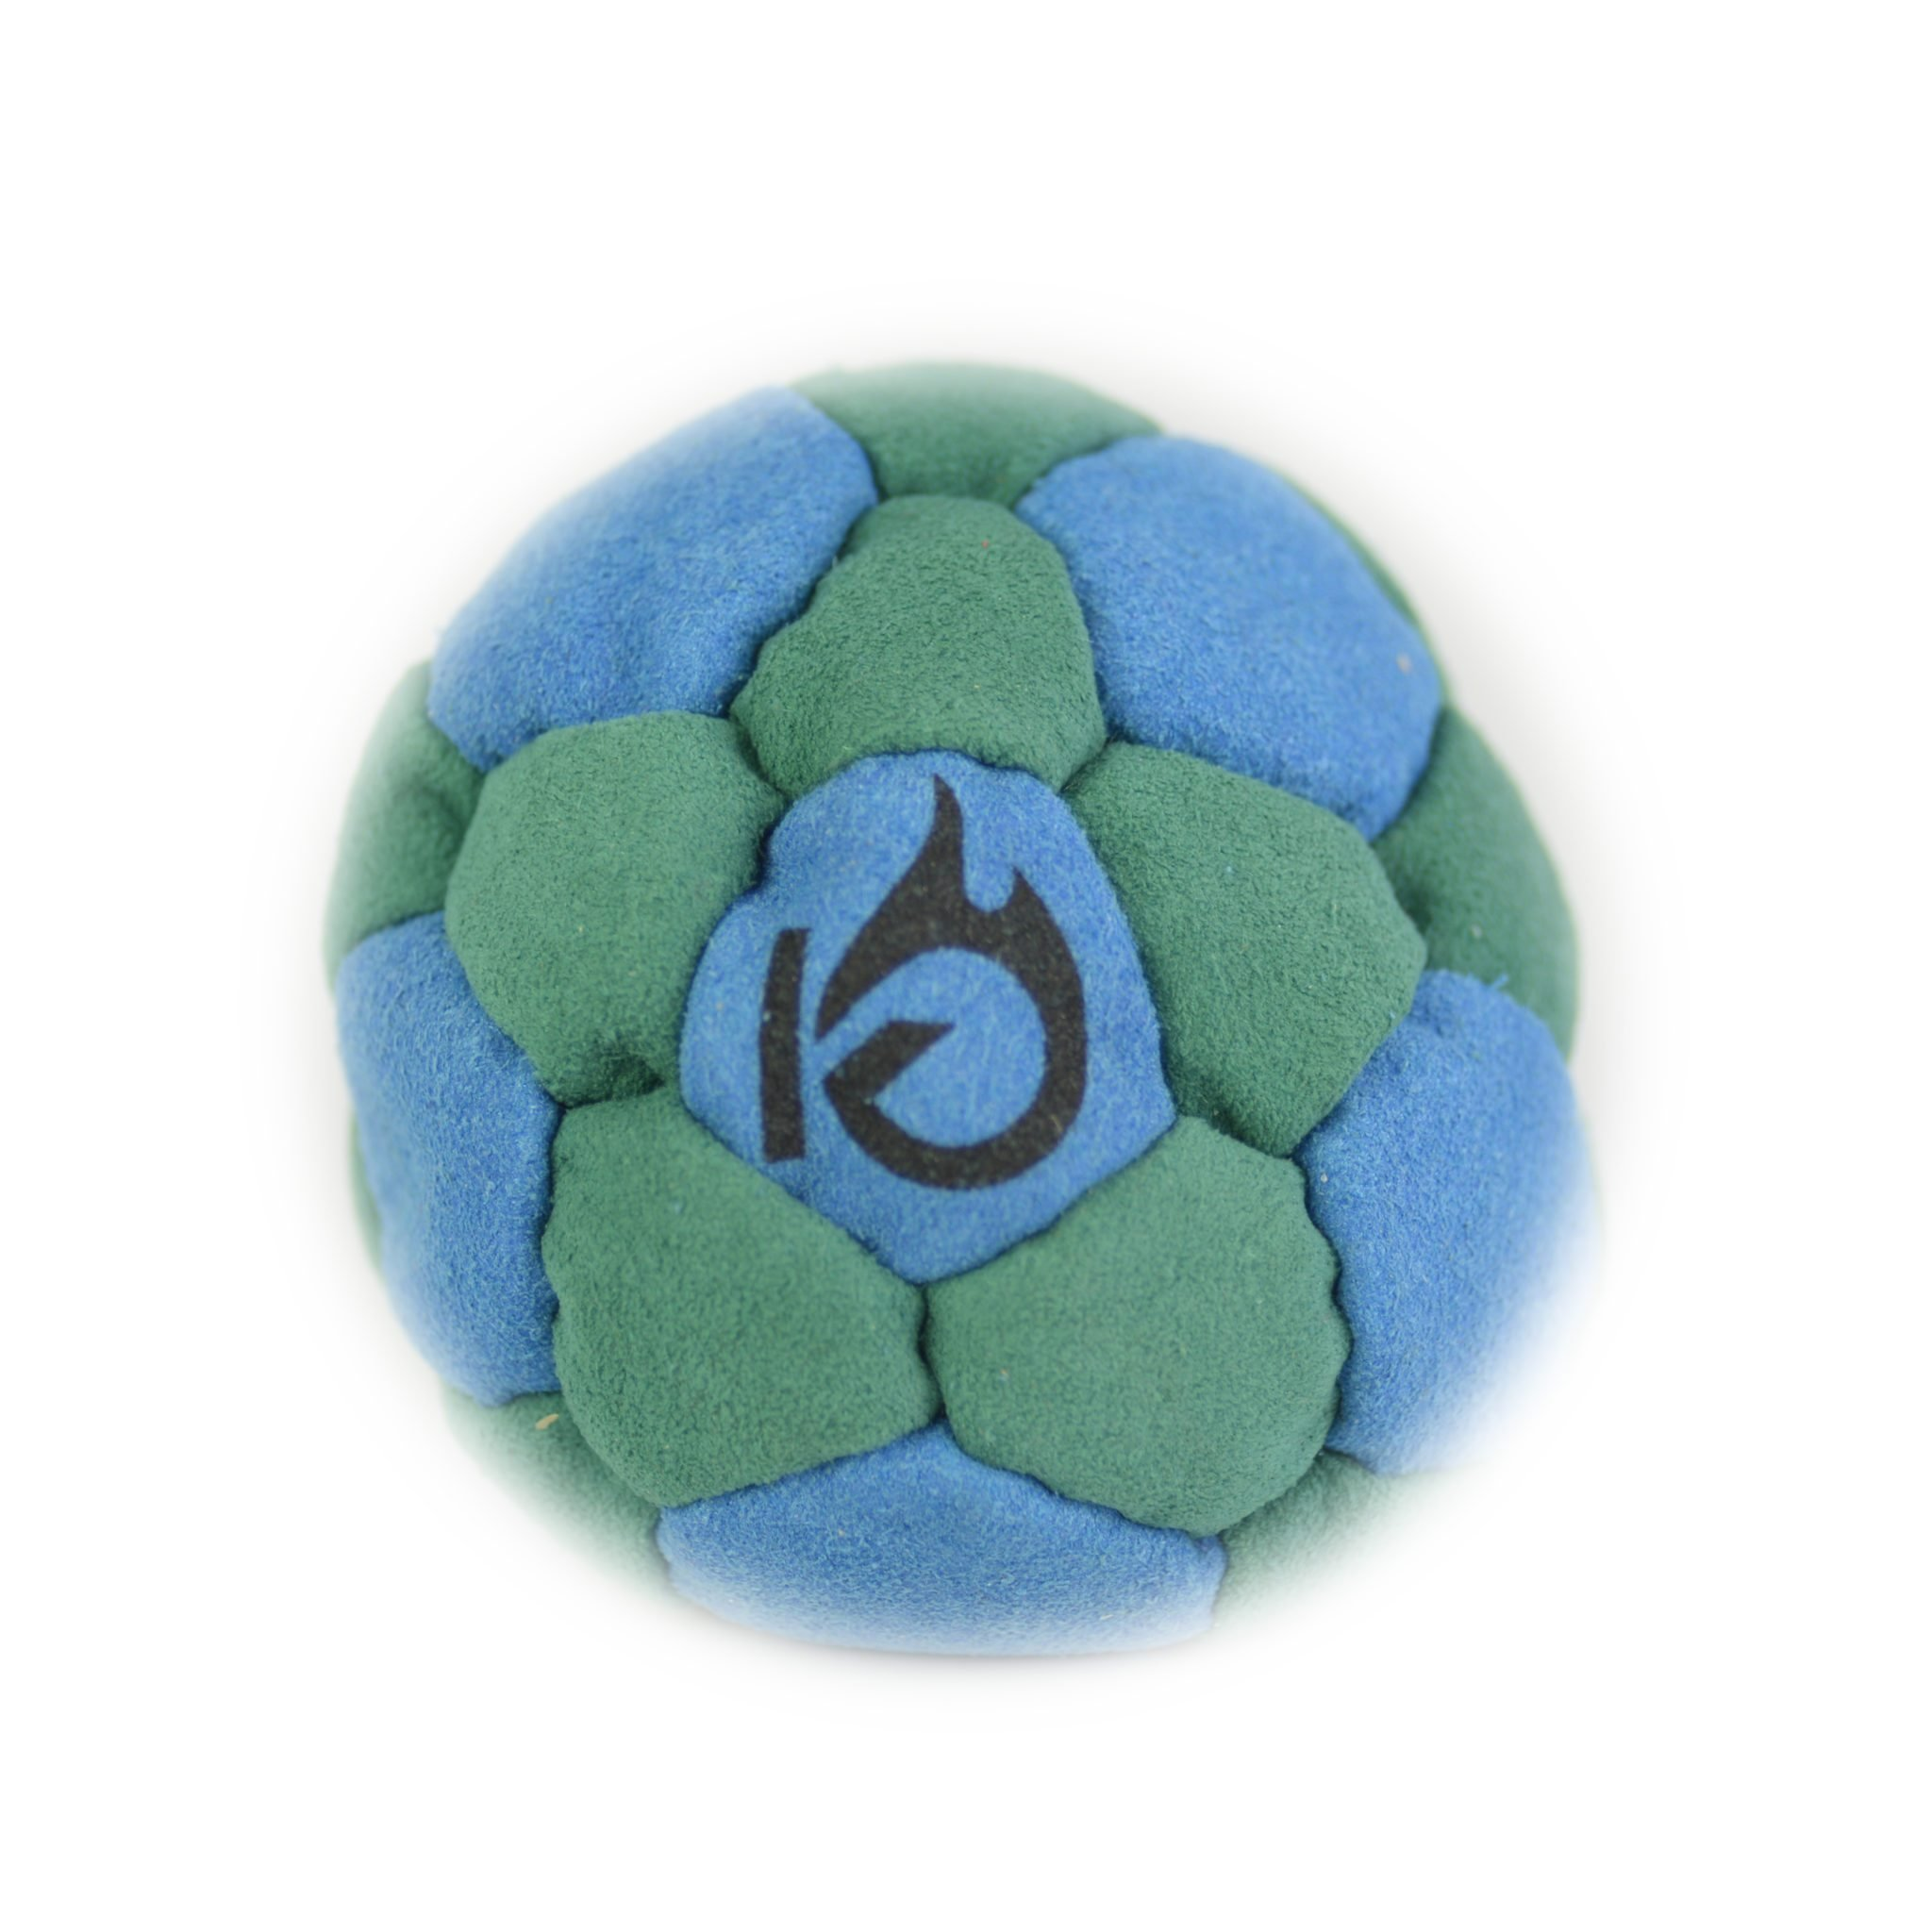 KickFire SuperSacks Aqua Mist Sand Filled Hacky Sack 16 Panel Leather Footbag | BONUS Video Quick Start Tips | Best for Kids, Teens and Adults | Five Super Color Combinations